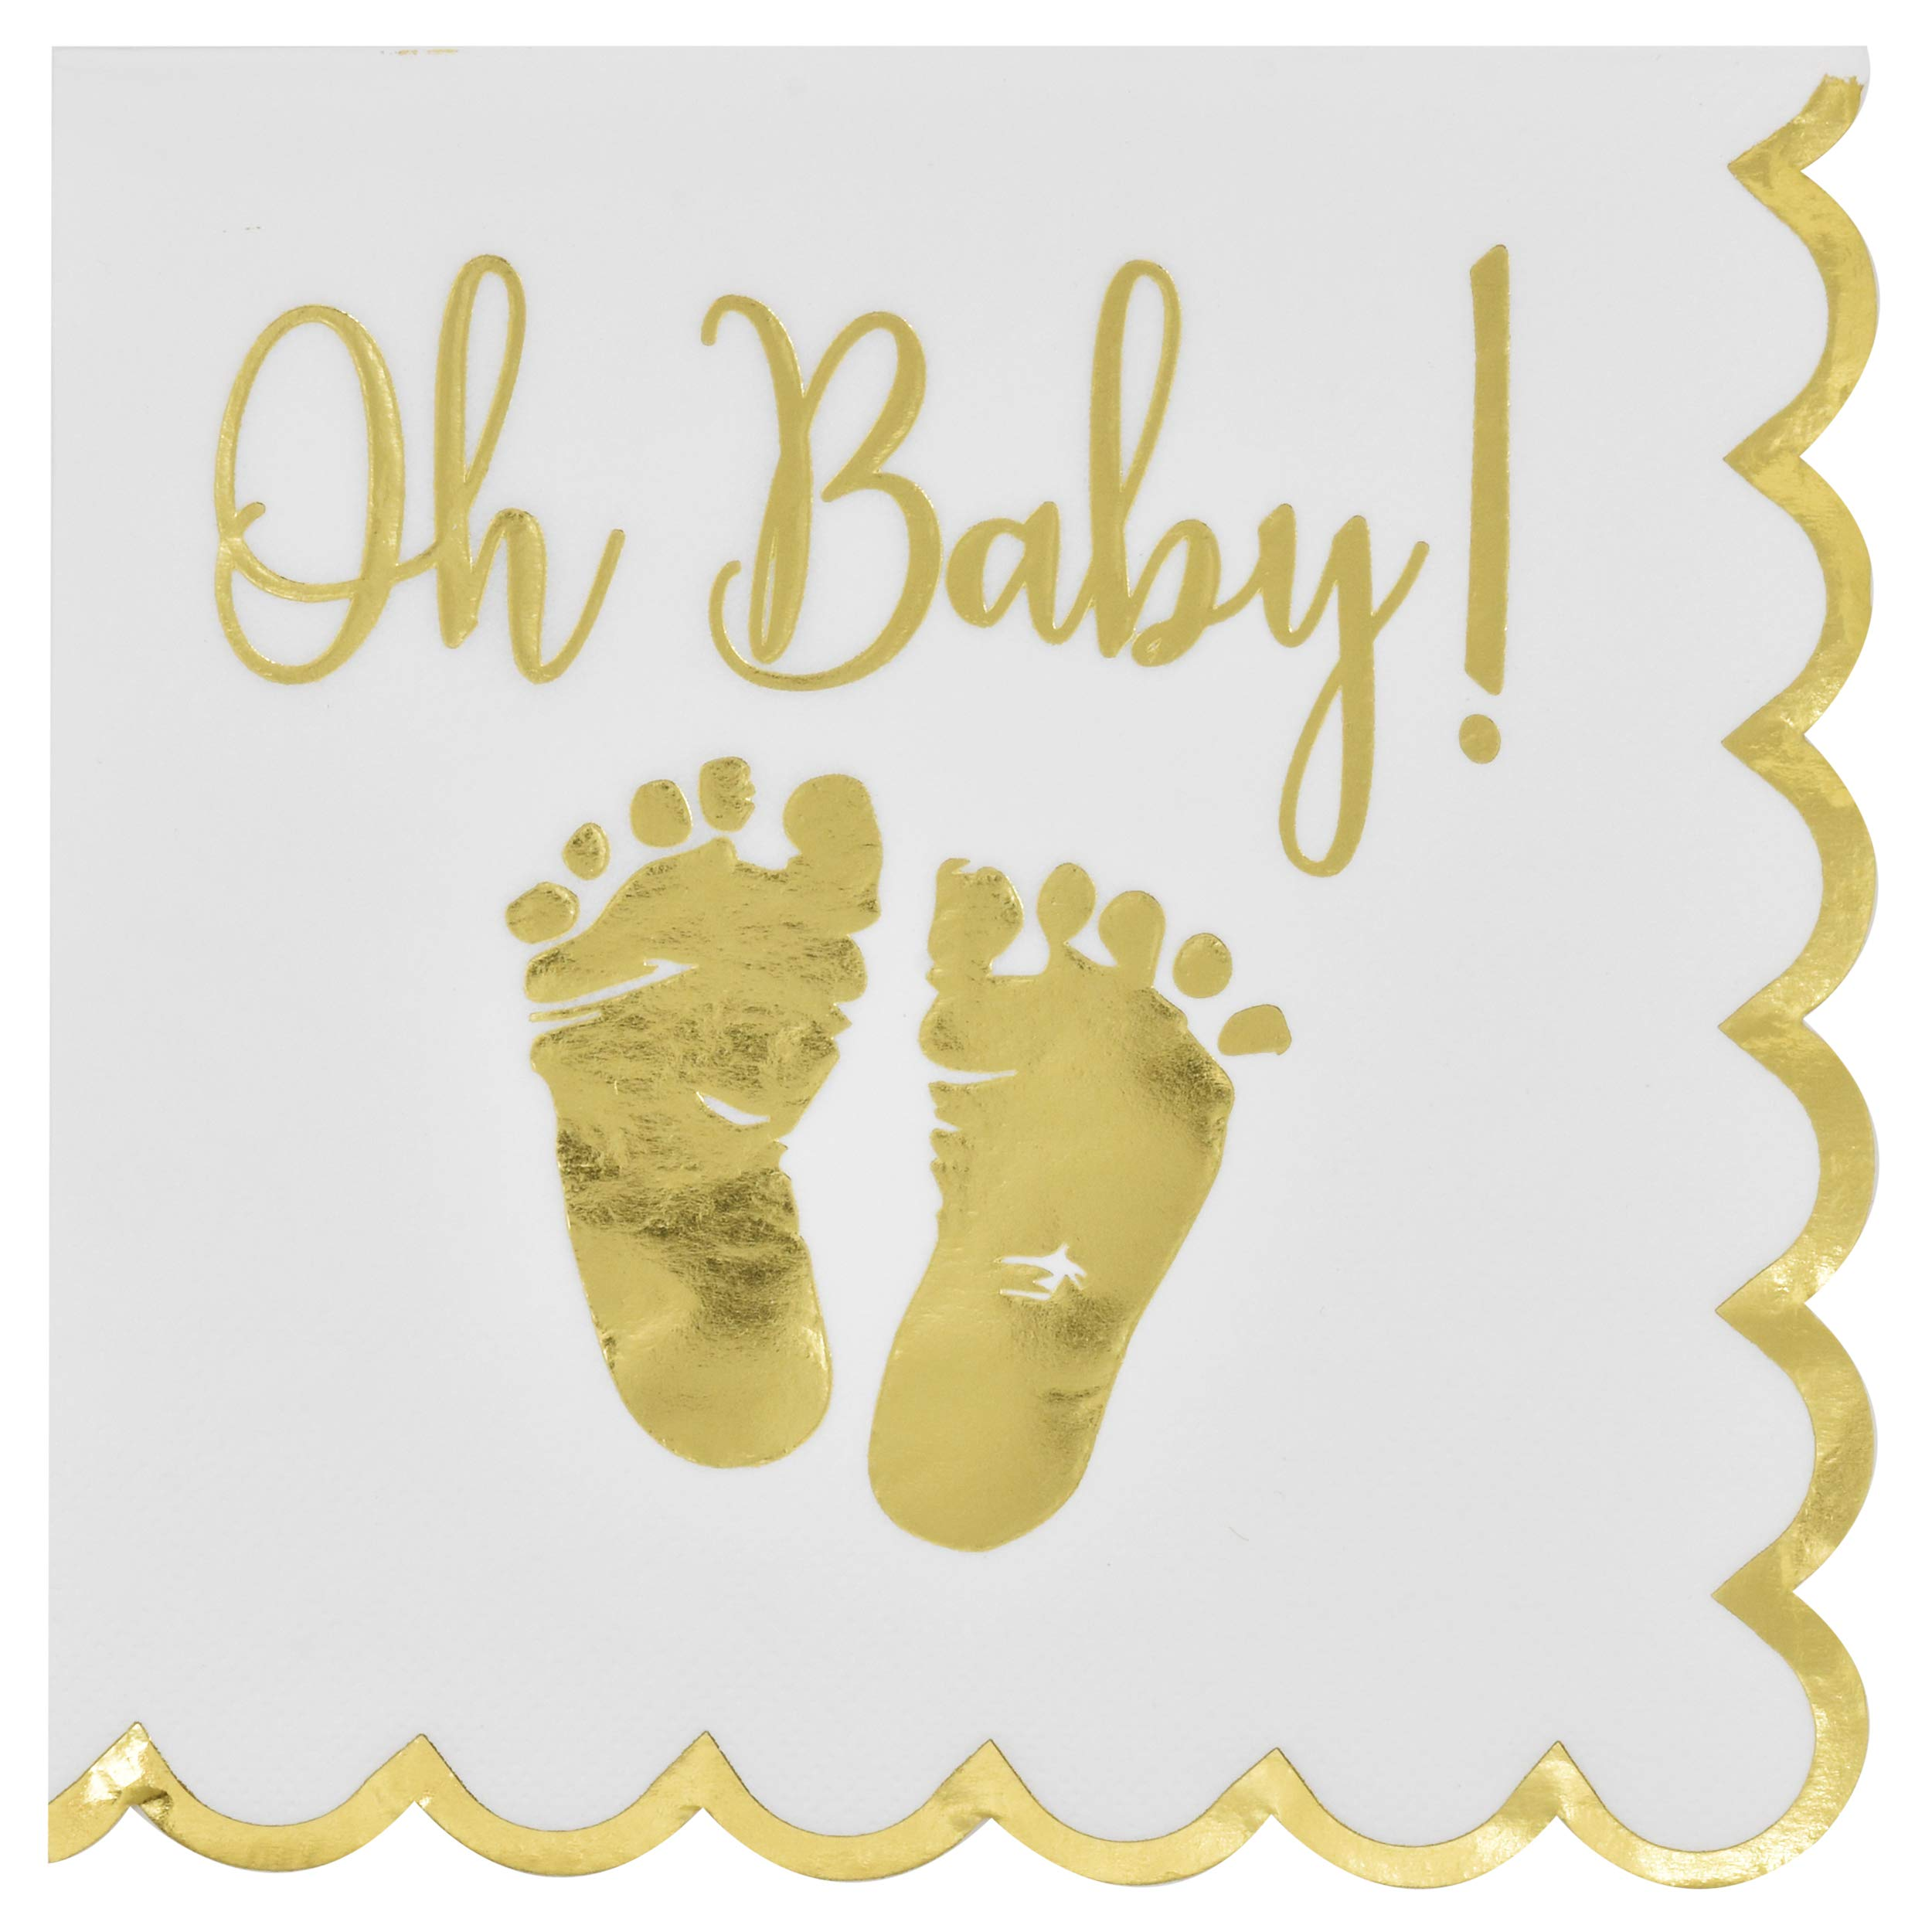 100 Baby Shower Napkin Oh Baby Luncheon Napkins with Scalloped Edge 3-Ply Gold Feet Footprints on White Paper Napkin for Boy & Girl Gender Reveal Party Supplies Decoration Accessories by Gift Boutique by Gift Boutique